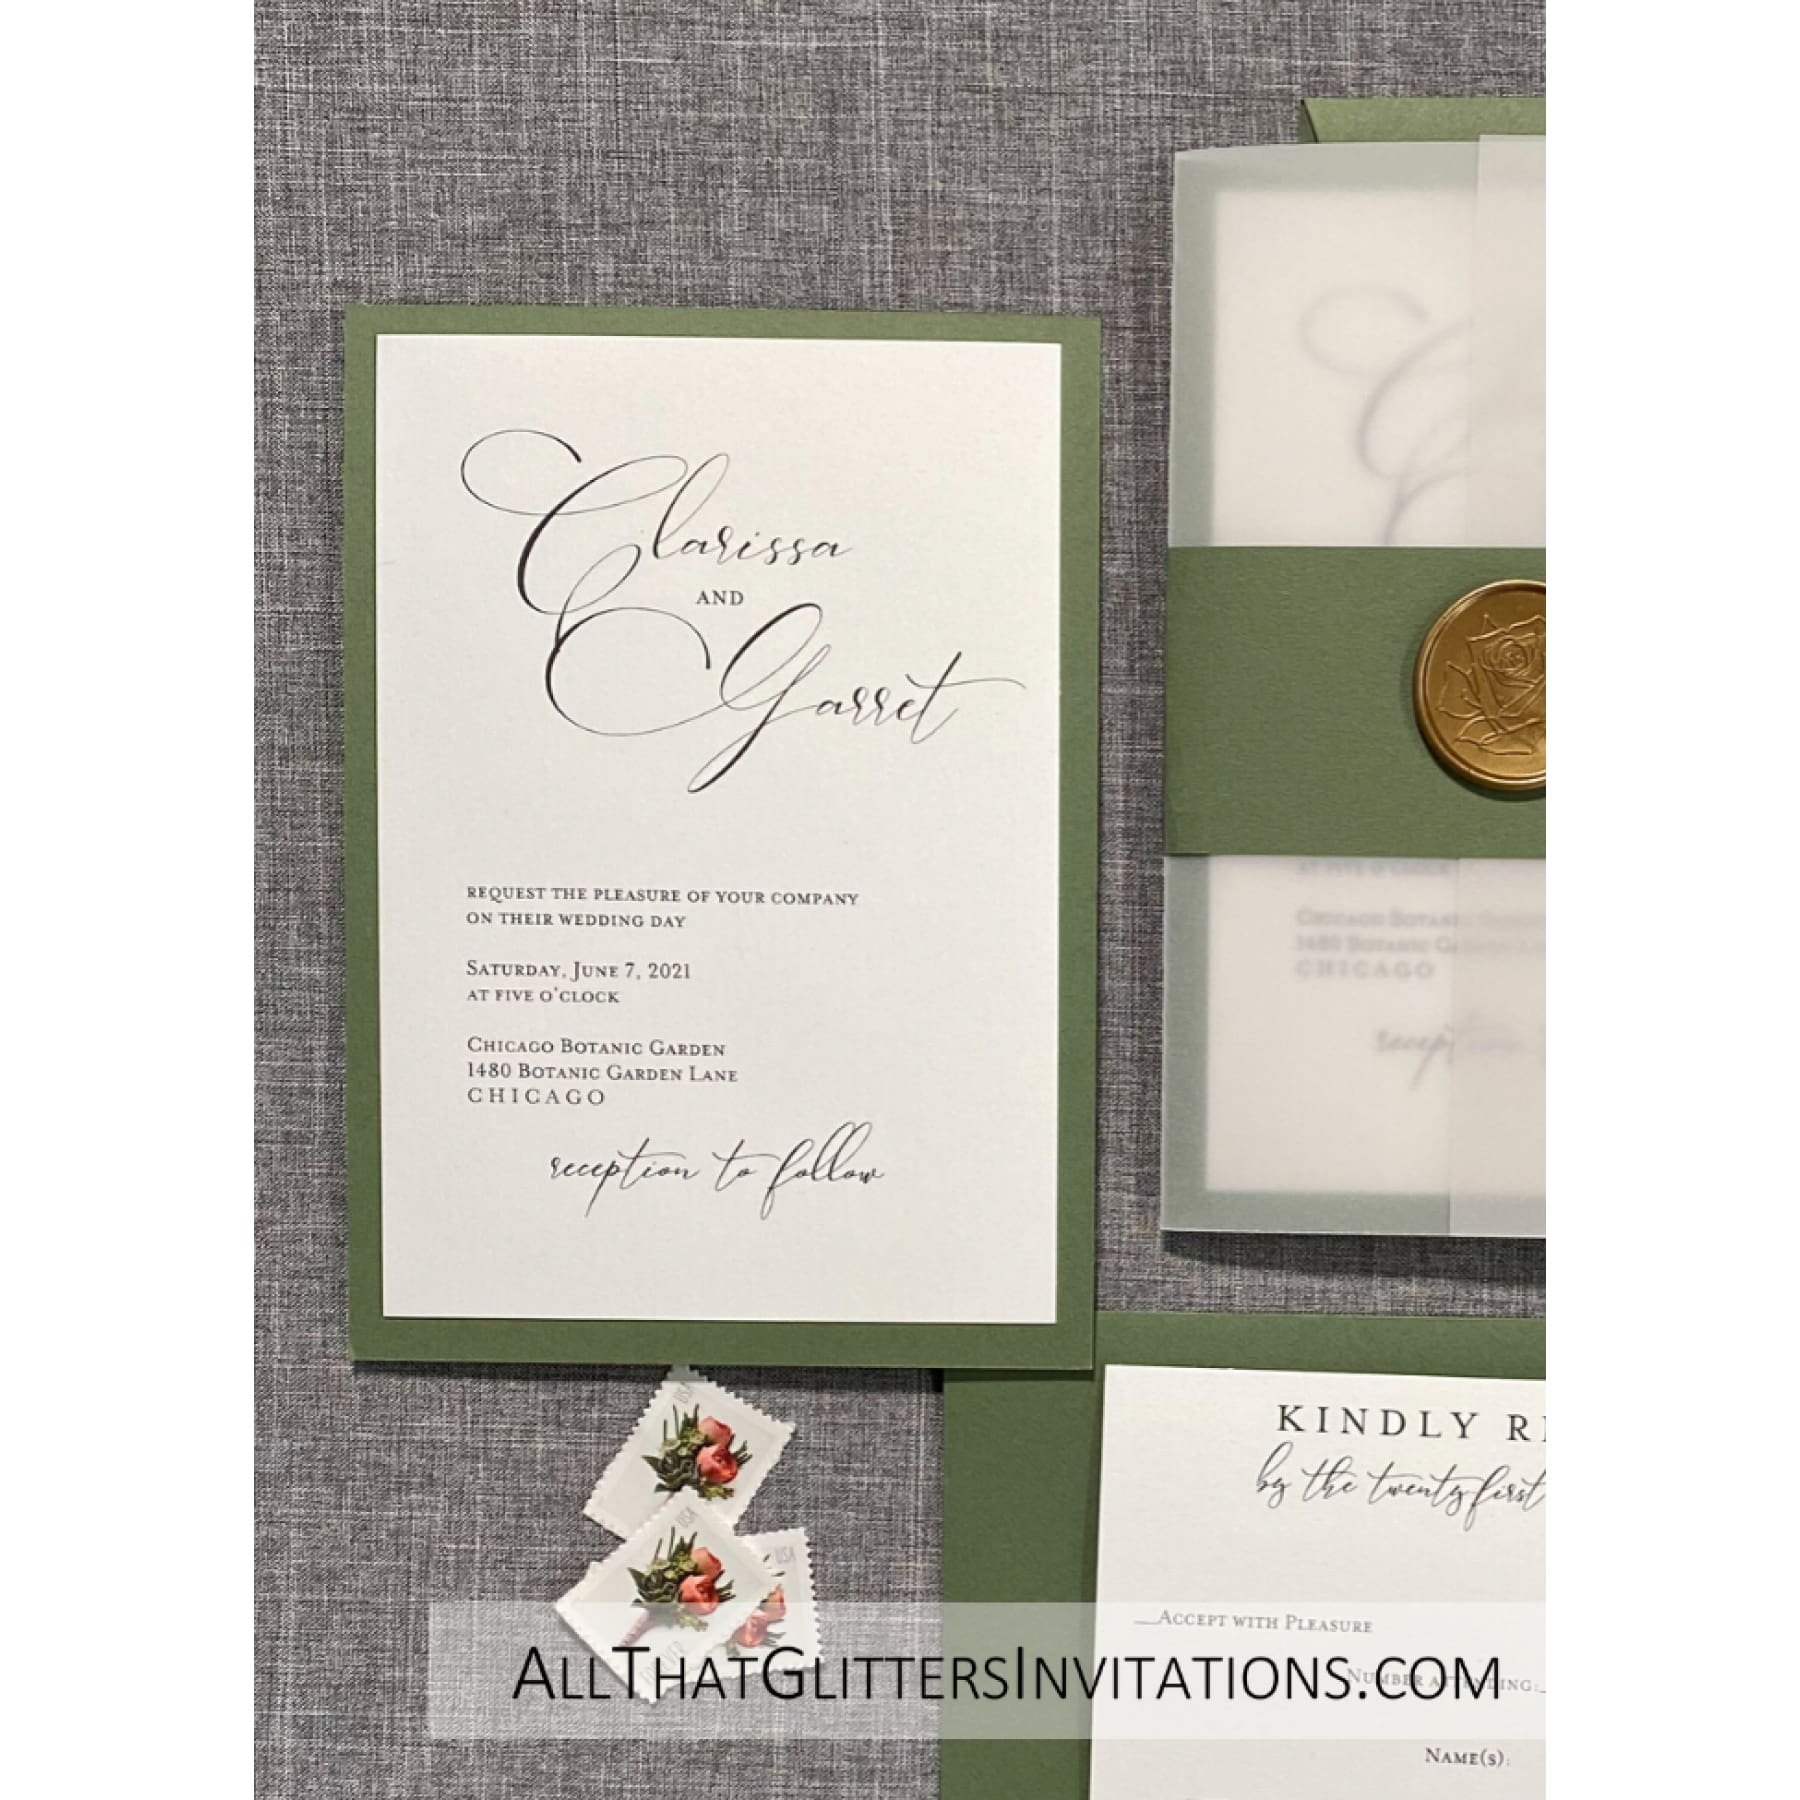 Letje Elegant Grey Wedding Invitation Set Vellum Jackets Wax Seals Pertaining To Recollections Cards And Envelopes Templates